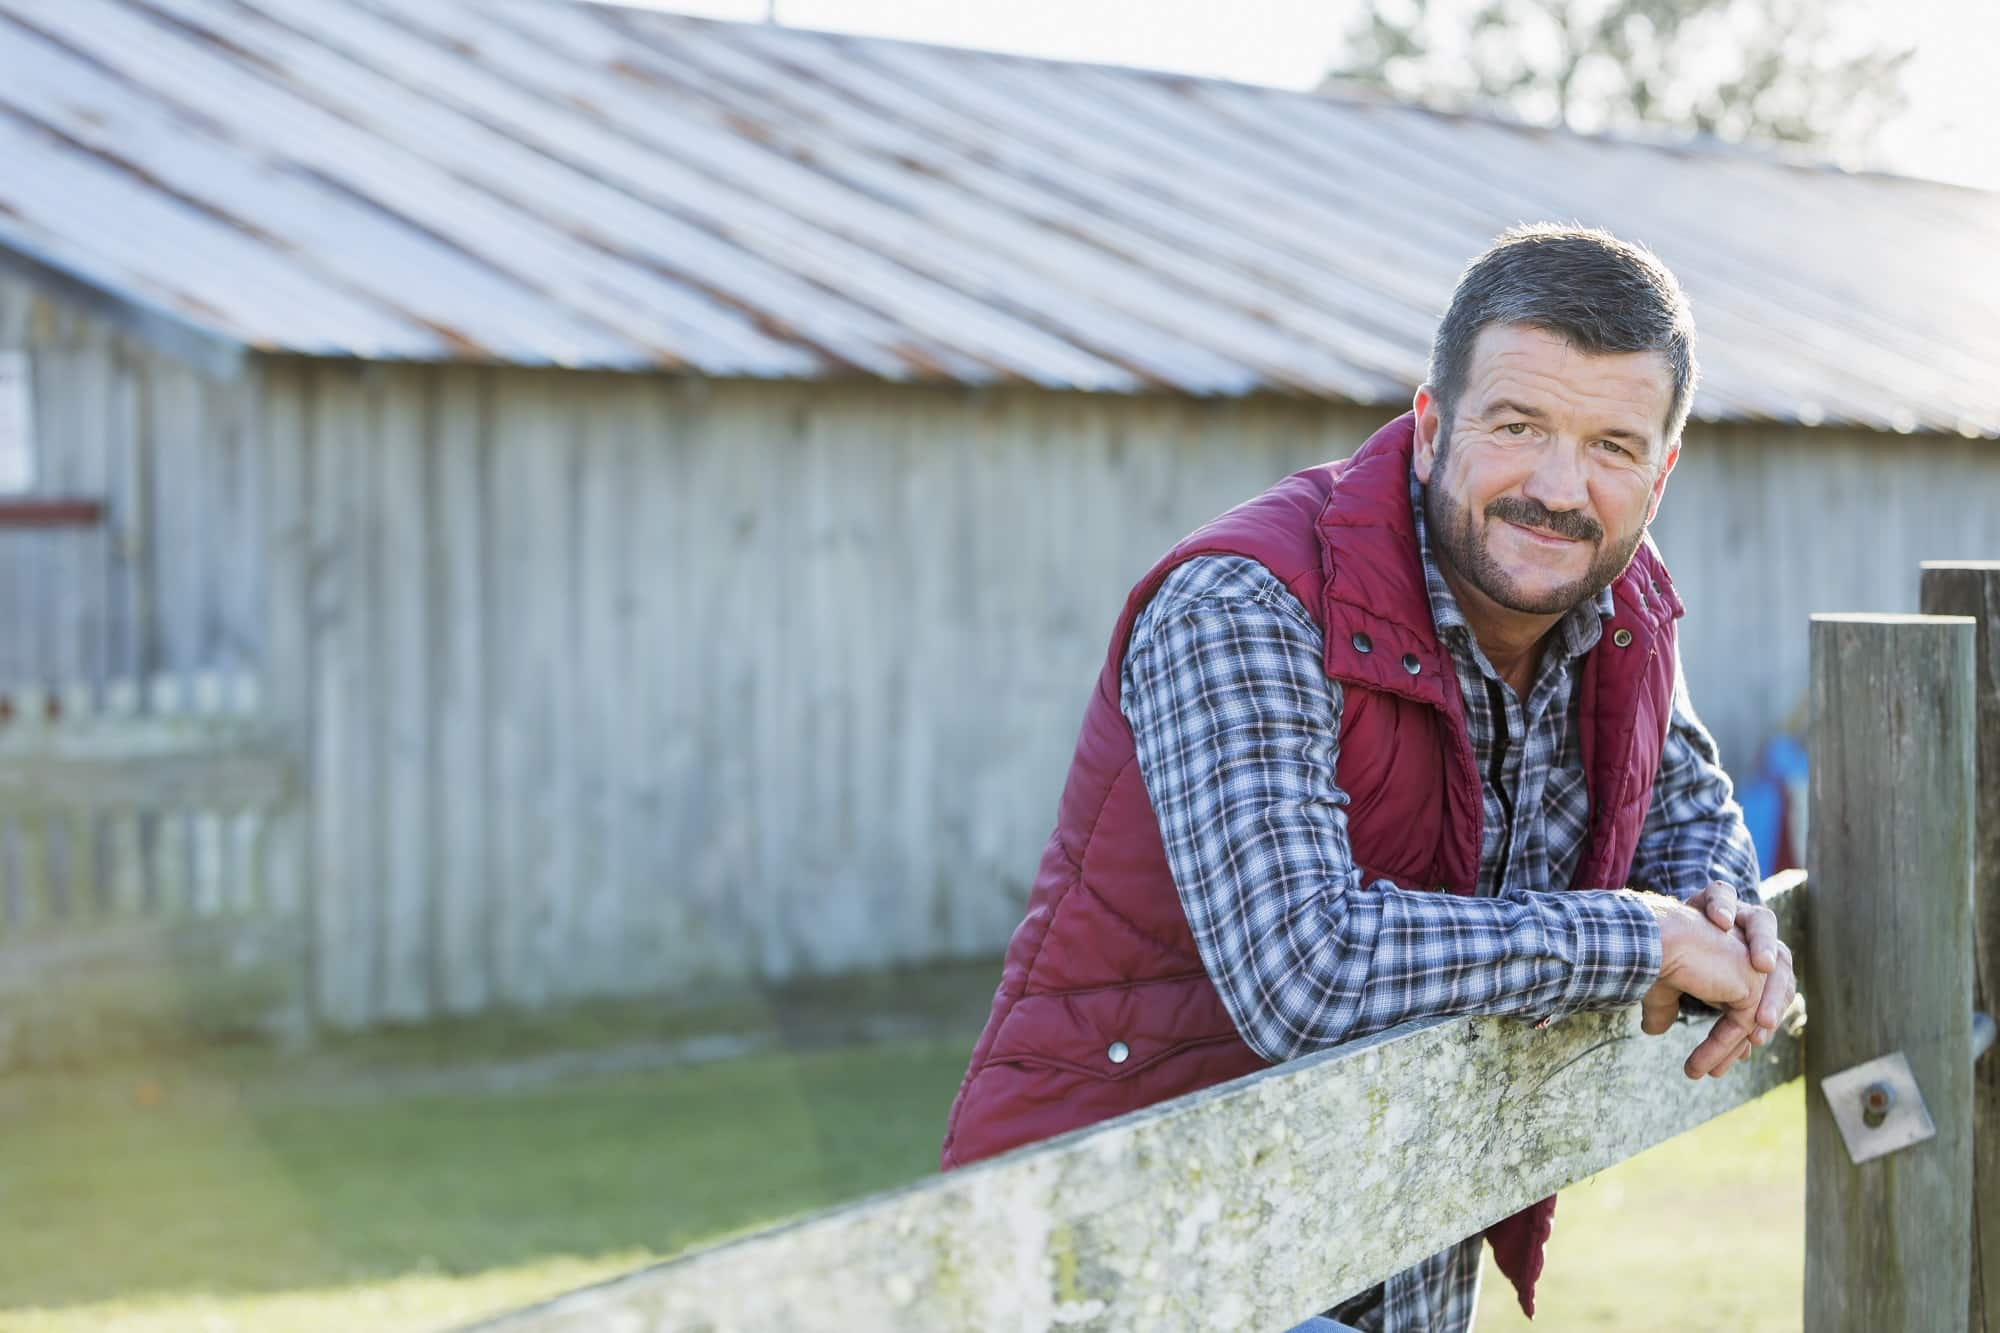 A farmer or rancher, mature man in his 50s, standing outside a barn, with his arms leaning on a wooden fence. He is wearing jeans, boots, a plaid shirt and vest.